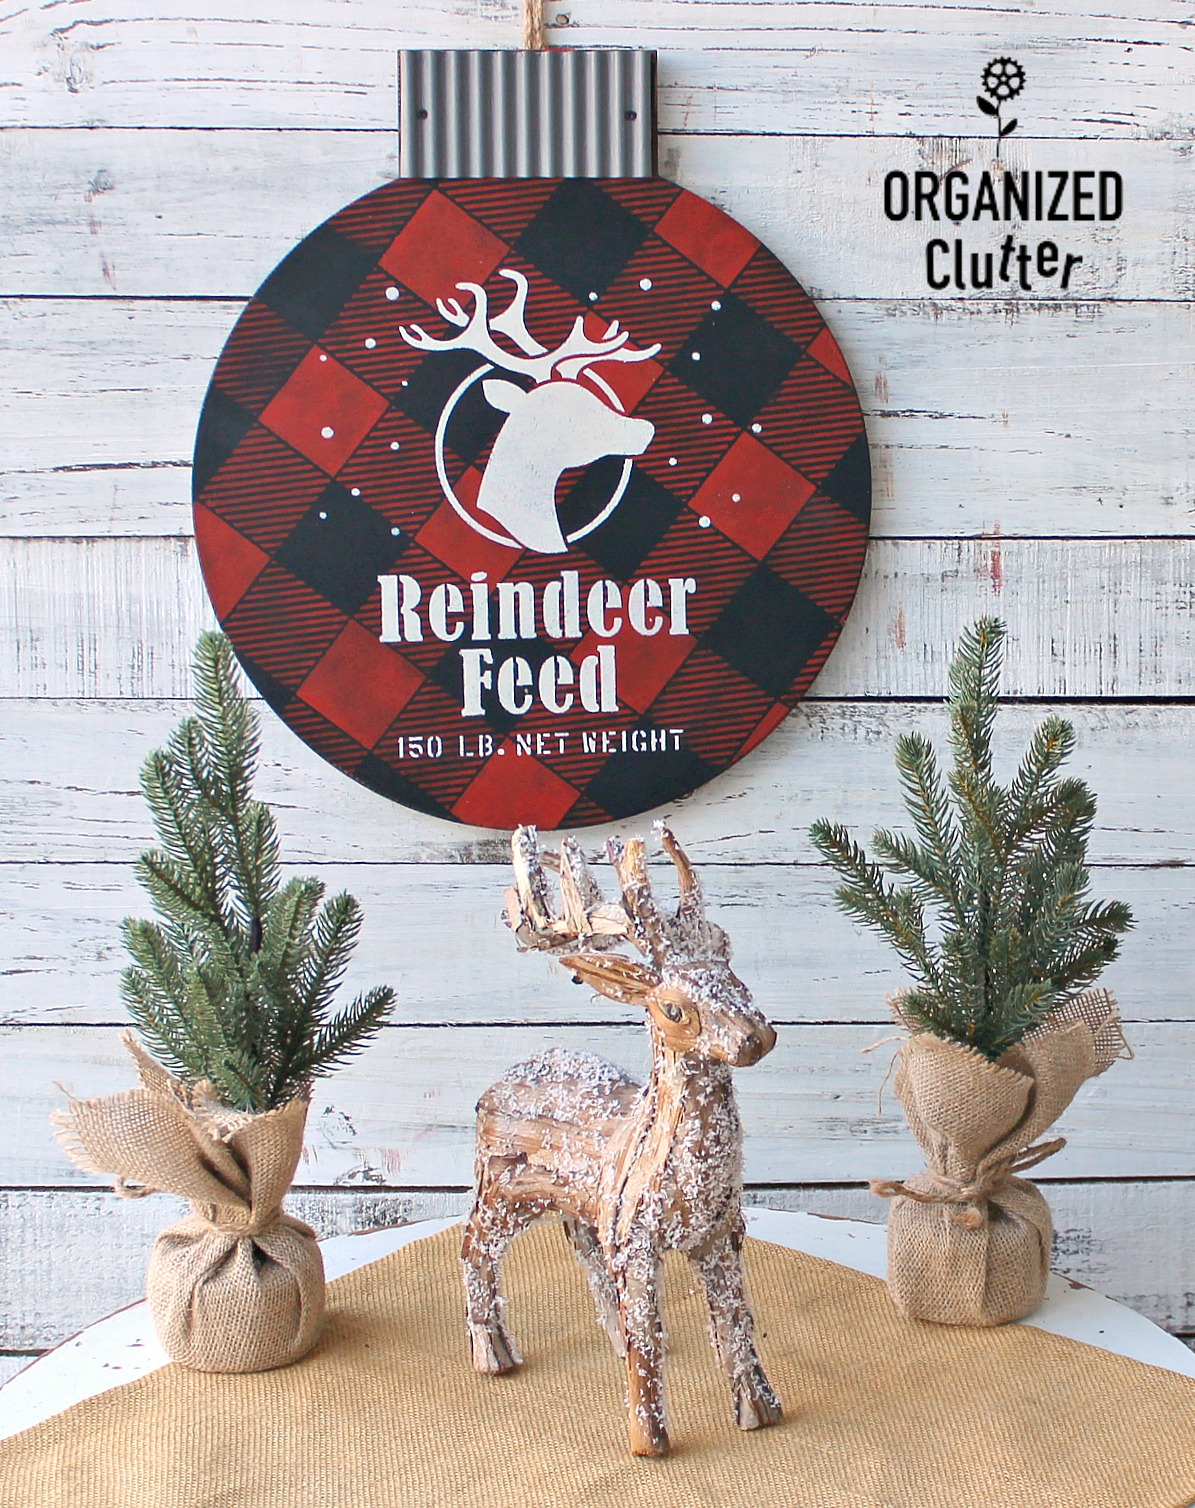 Buffalo Checked Reindeer Feed Christmas ornament wall art by Organized Clutter, featured on Funky Junk Interiors